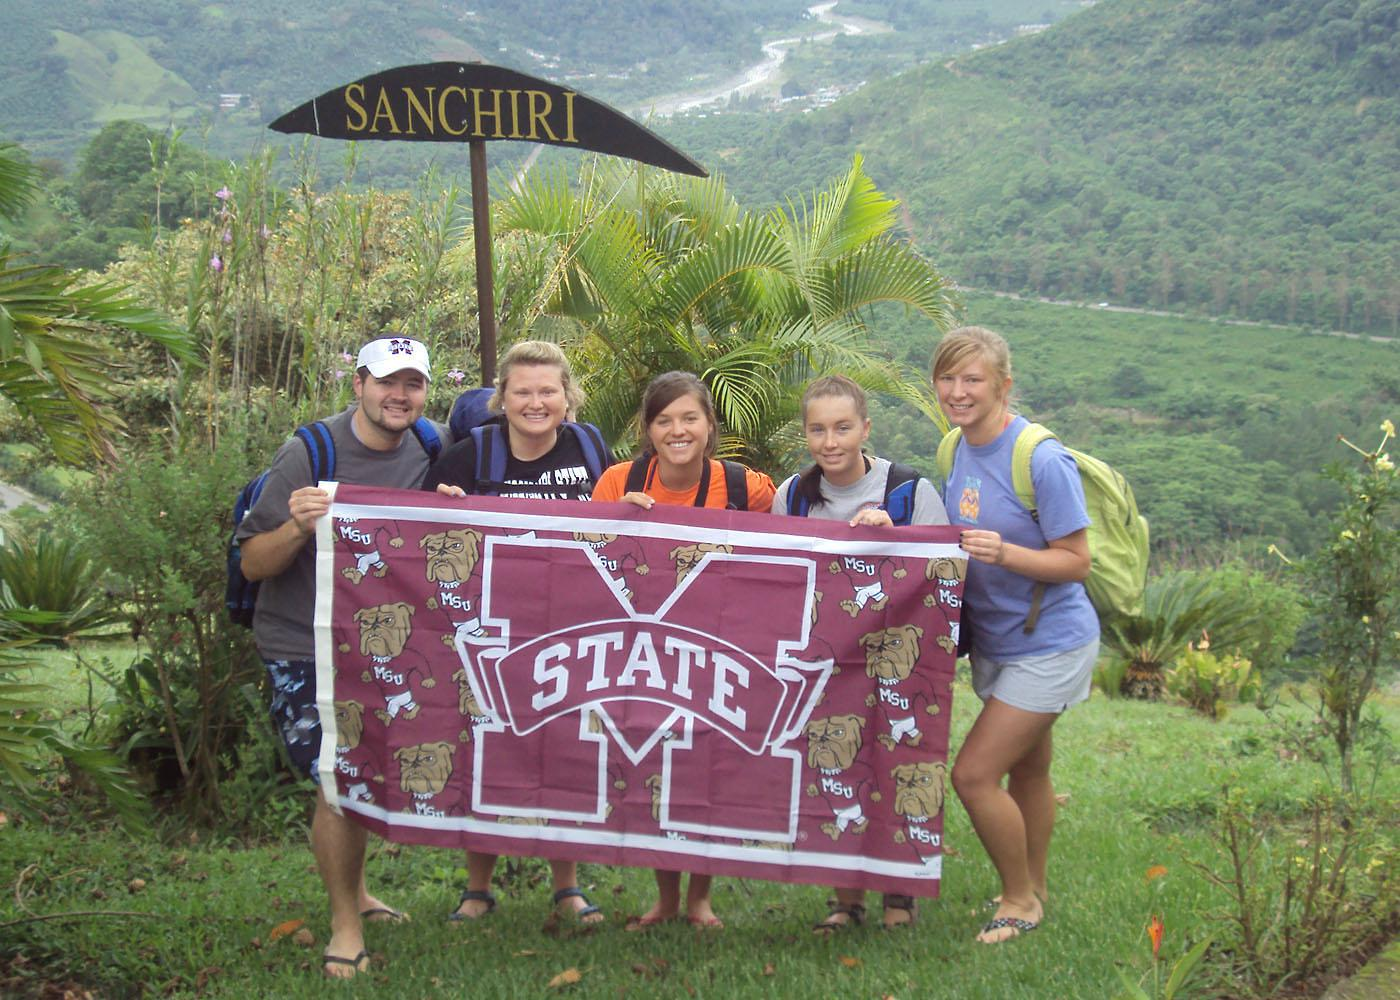 Mississippi State University College of Veterinary Medicine students (from left to right) Brolin Evans, Katie Cooley, Kellie Horton, Stephanie Starling and Brittany Fisher display their MSU pride while volunteering in Sanchiri, Costa Rica. (Photo submitted)